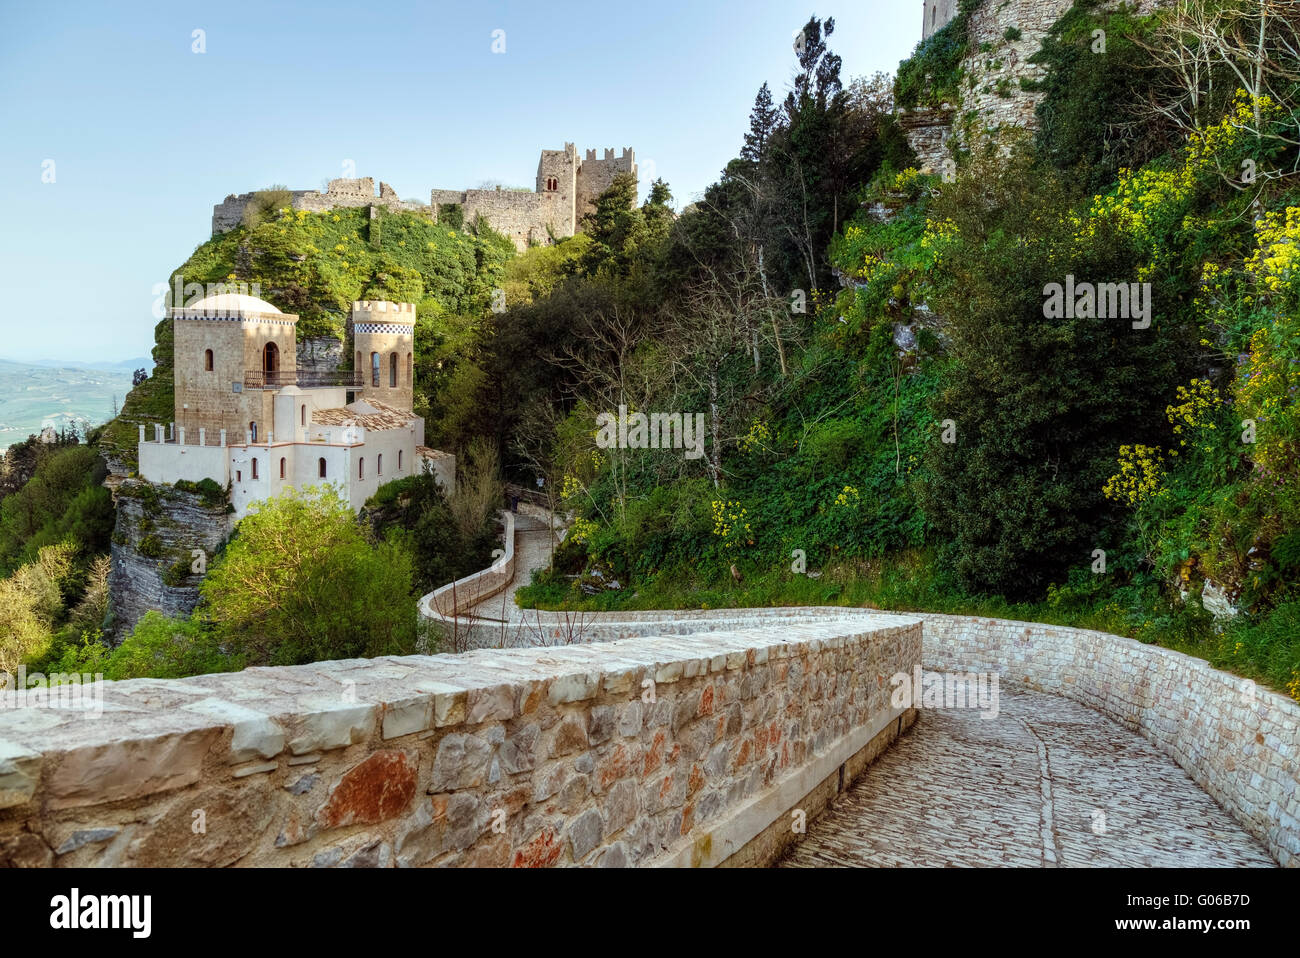 Erice, château, Trapani, Sicile, Italie Photo Stock